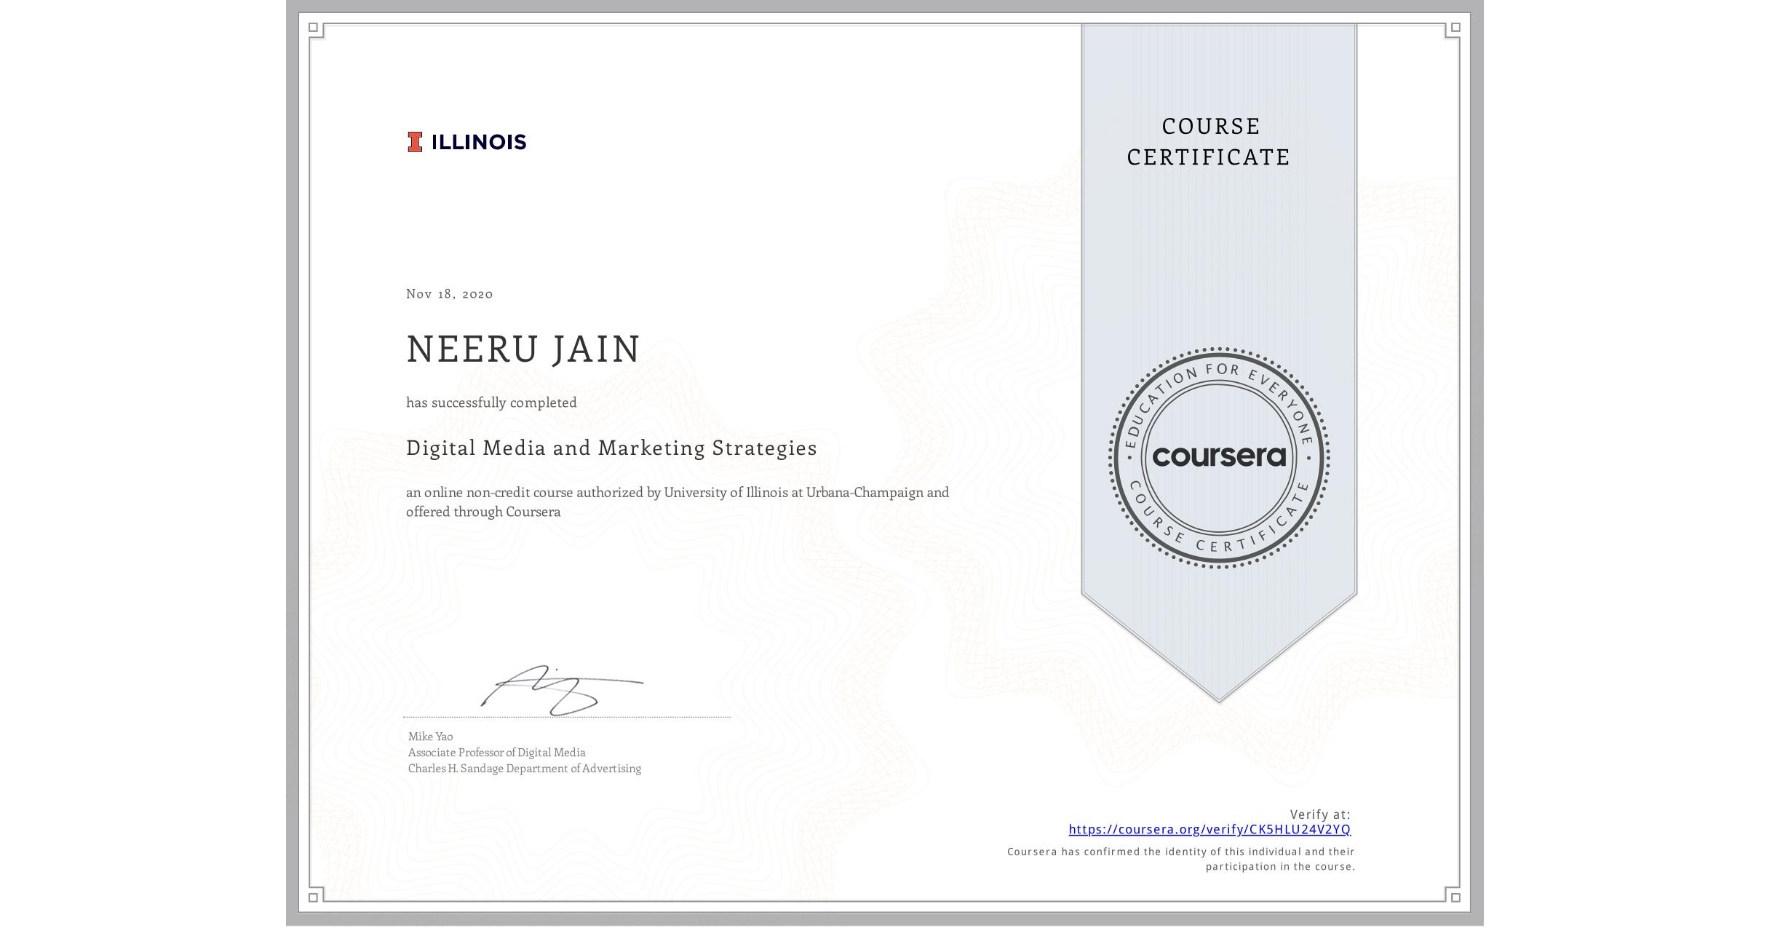 View certificate for NEERU JAIN, Digital Media and Marketing Strategies, an online non-credit course authorized by University of Illinois at Urbana-Champaign and offered through Coursera